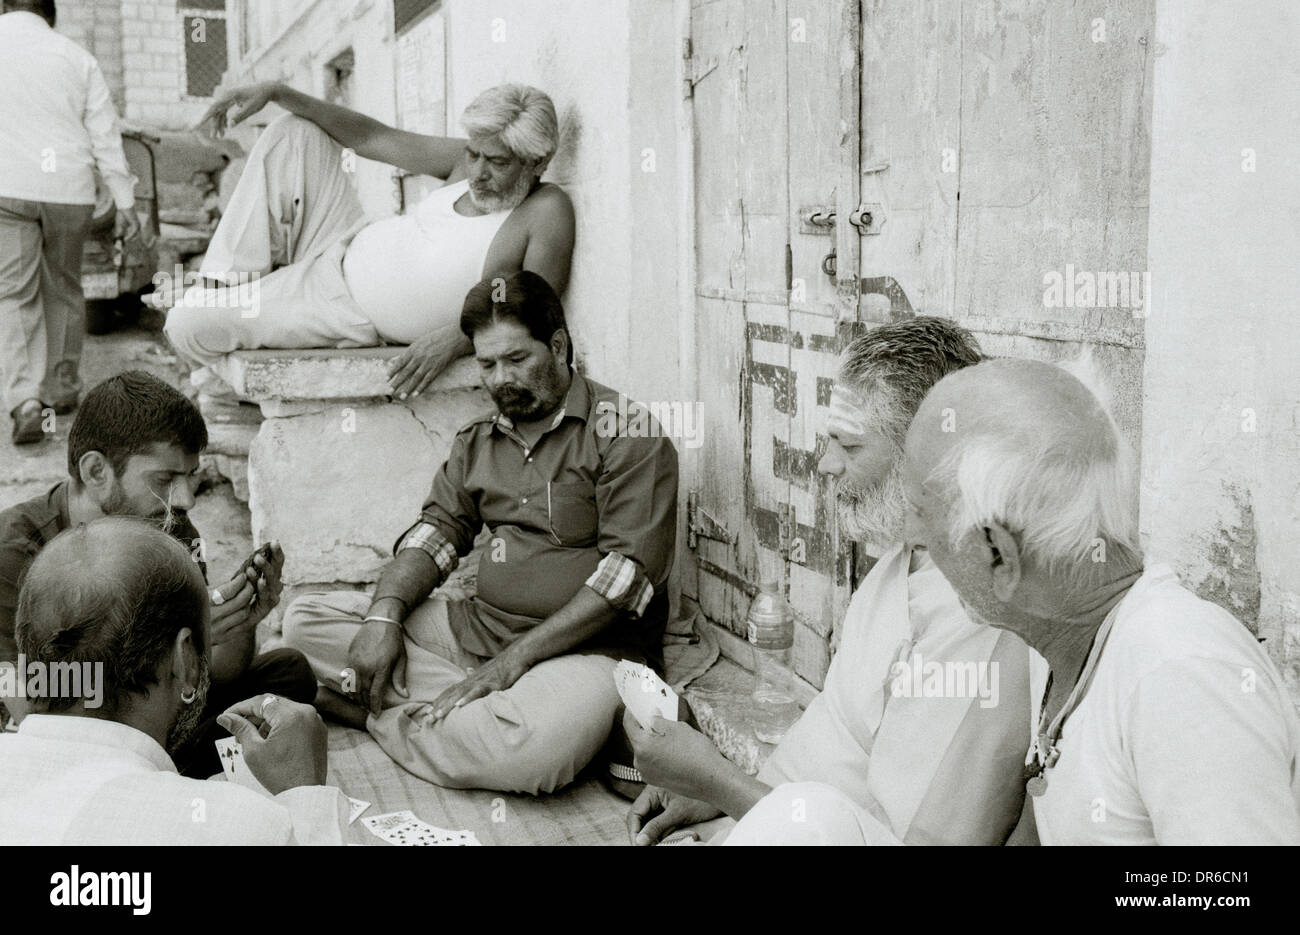 Street life in Brahmpur Brahmpuri Blue City old town in Jodhpur in Rajasthan in India in South Asia. Reportage People - Stock Image